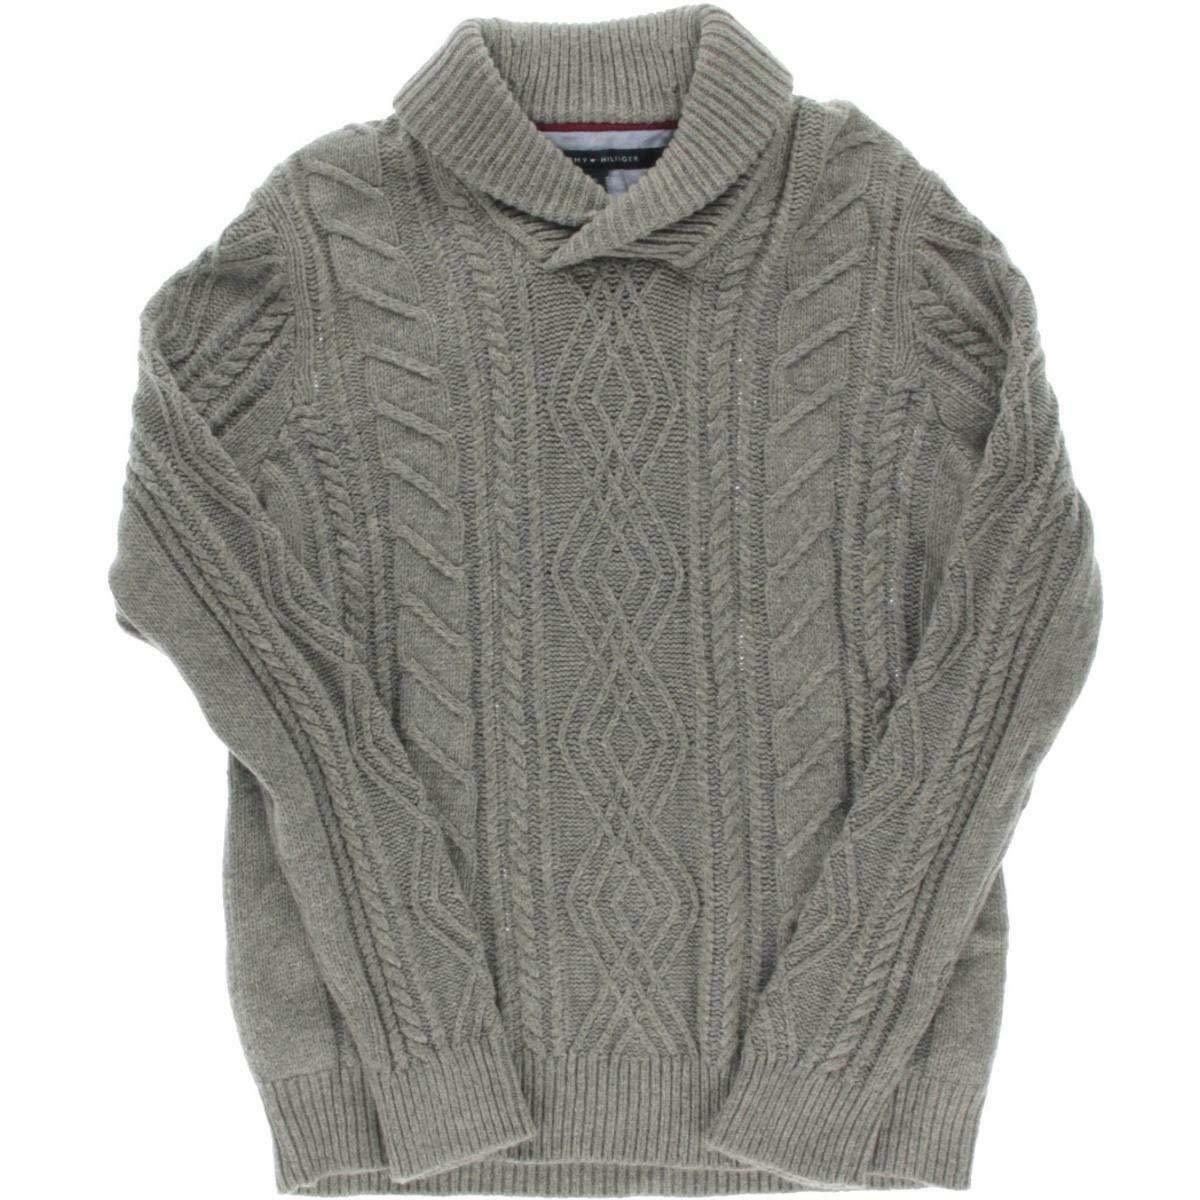 Tommy Hilfiger  Herren Cable Knit Wool Blend Pullover Sweater grau S,3839-4